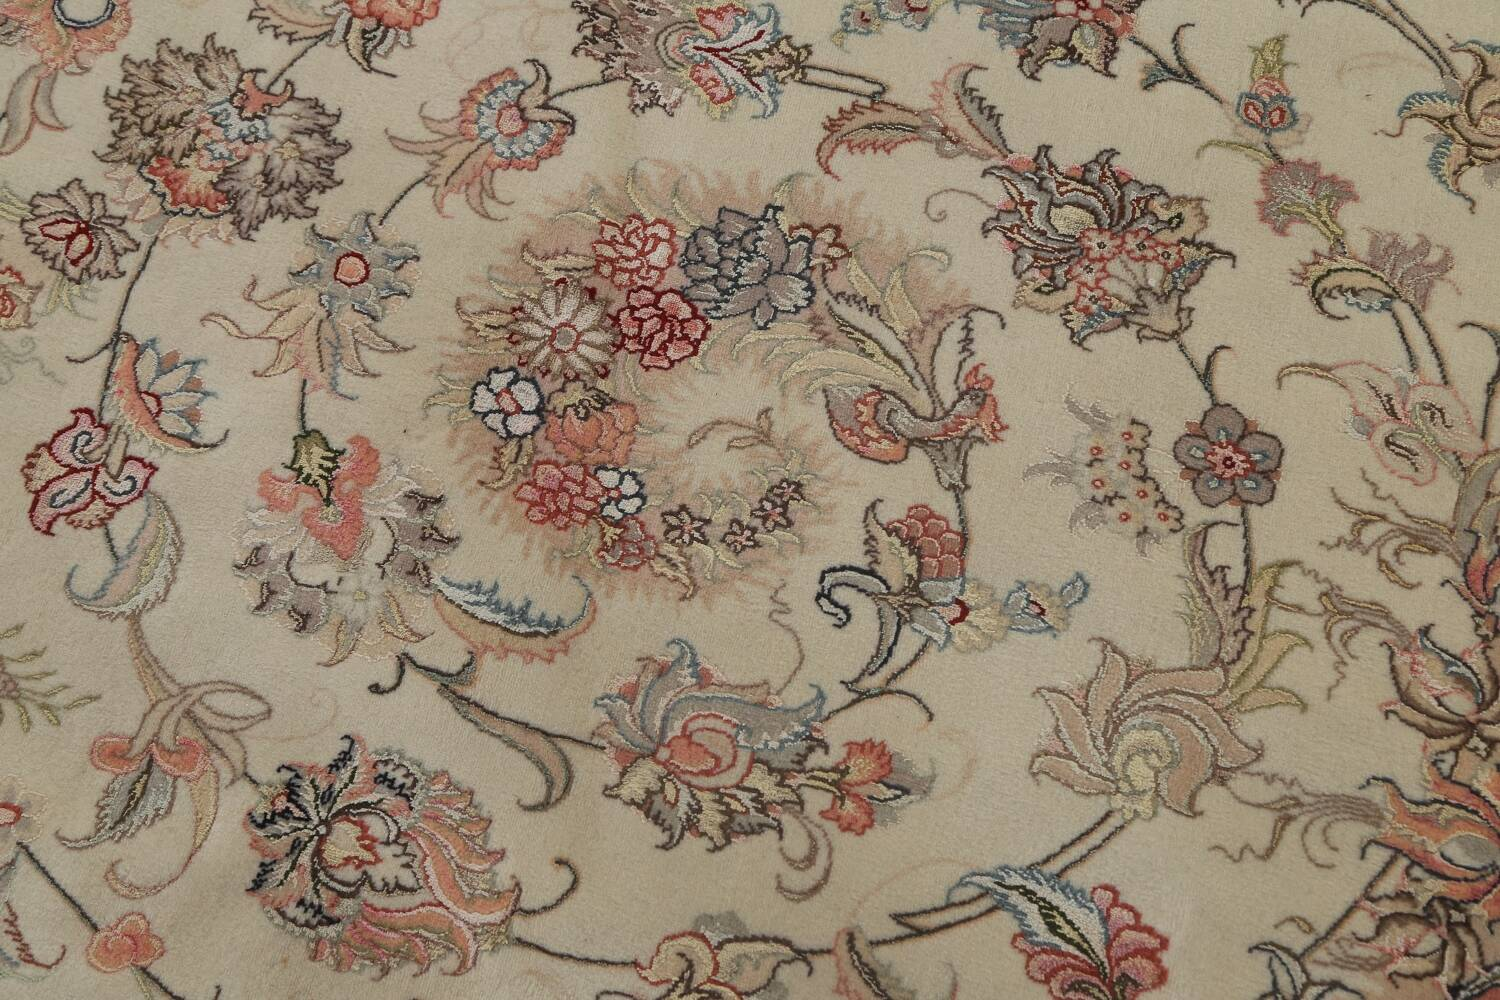 100% Vegetable Dye Floral Tabriz Persian Area Rug 22x23 Round image 18